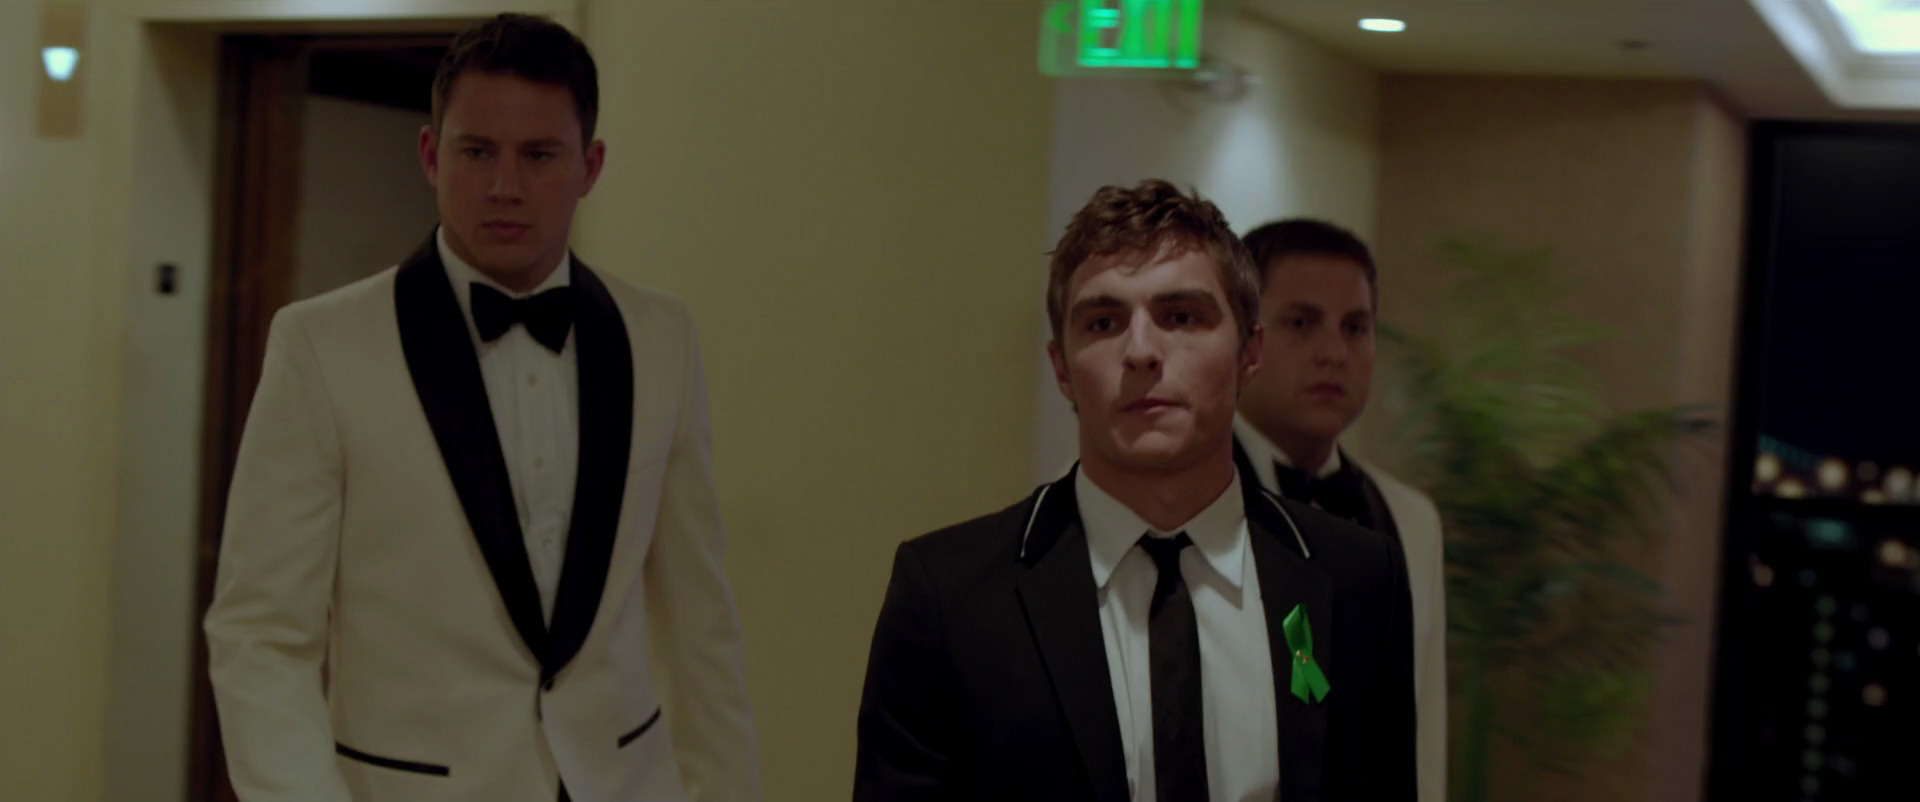 21 jump street 2012 dave franco photo 34905378 fanpop